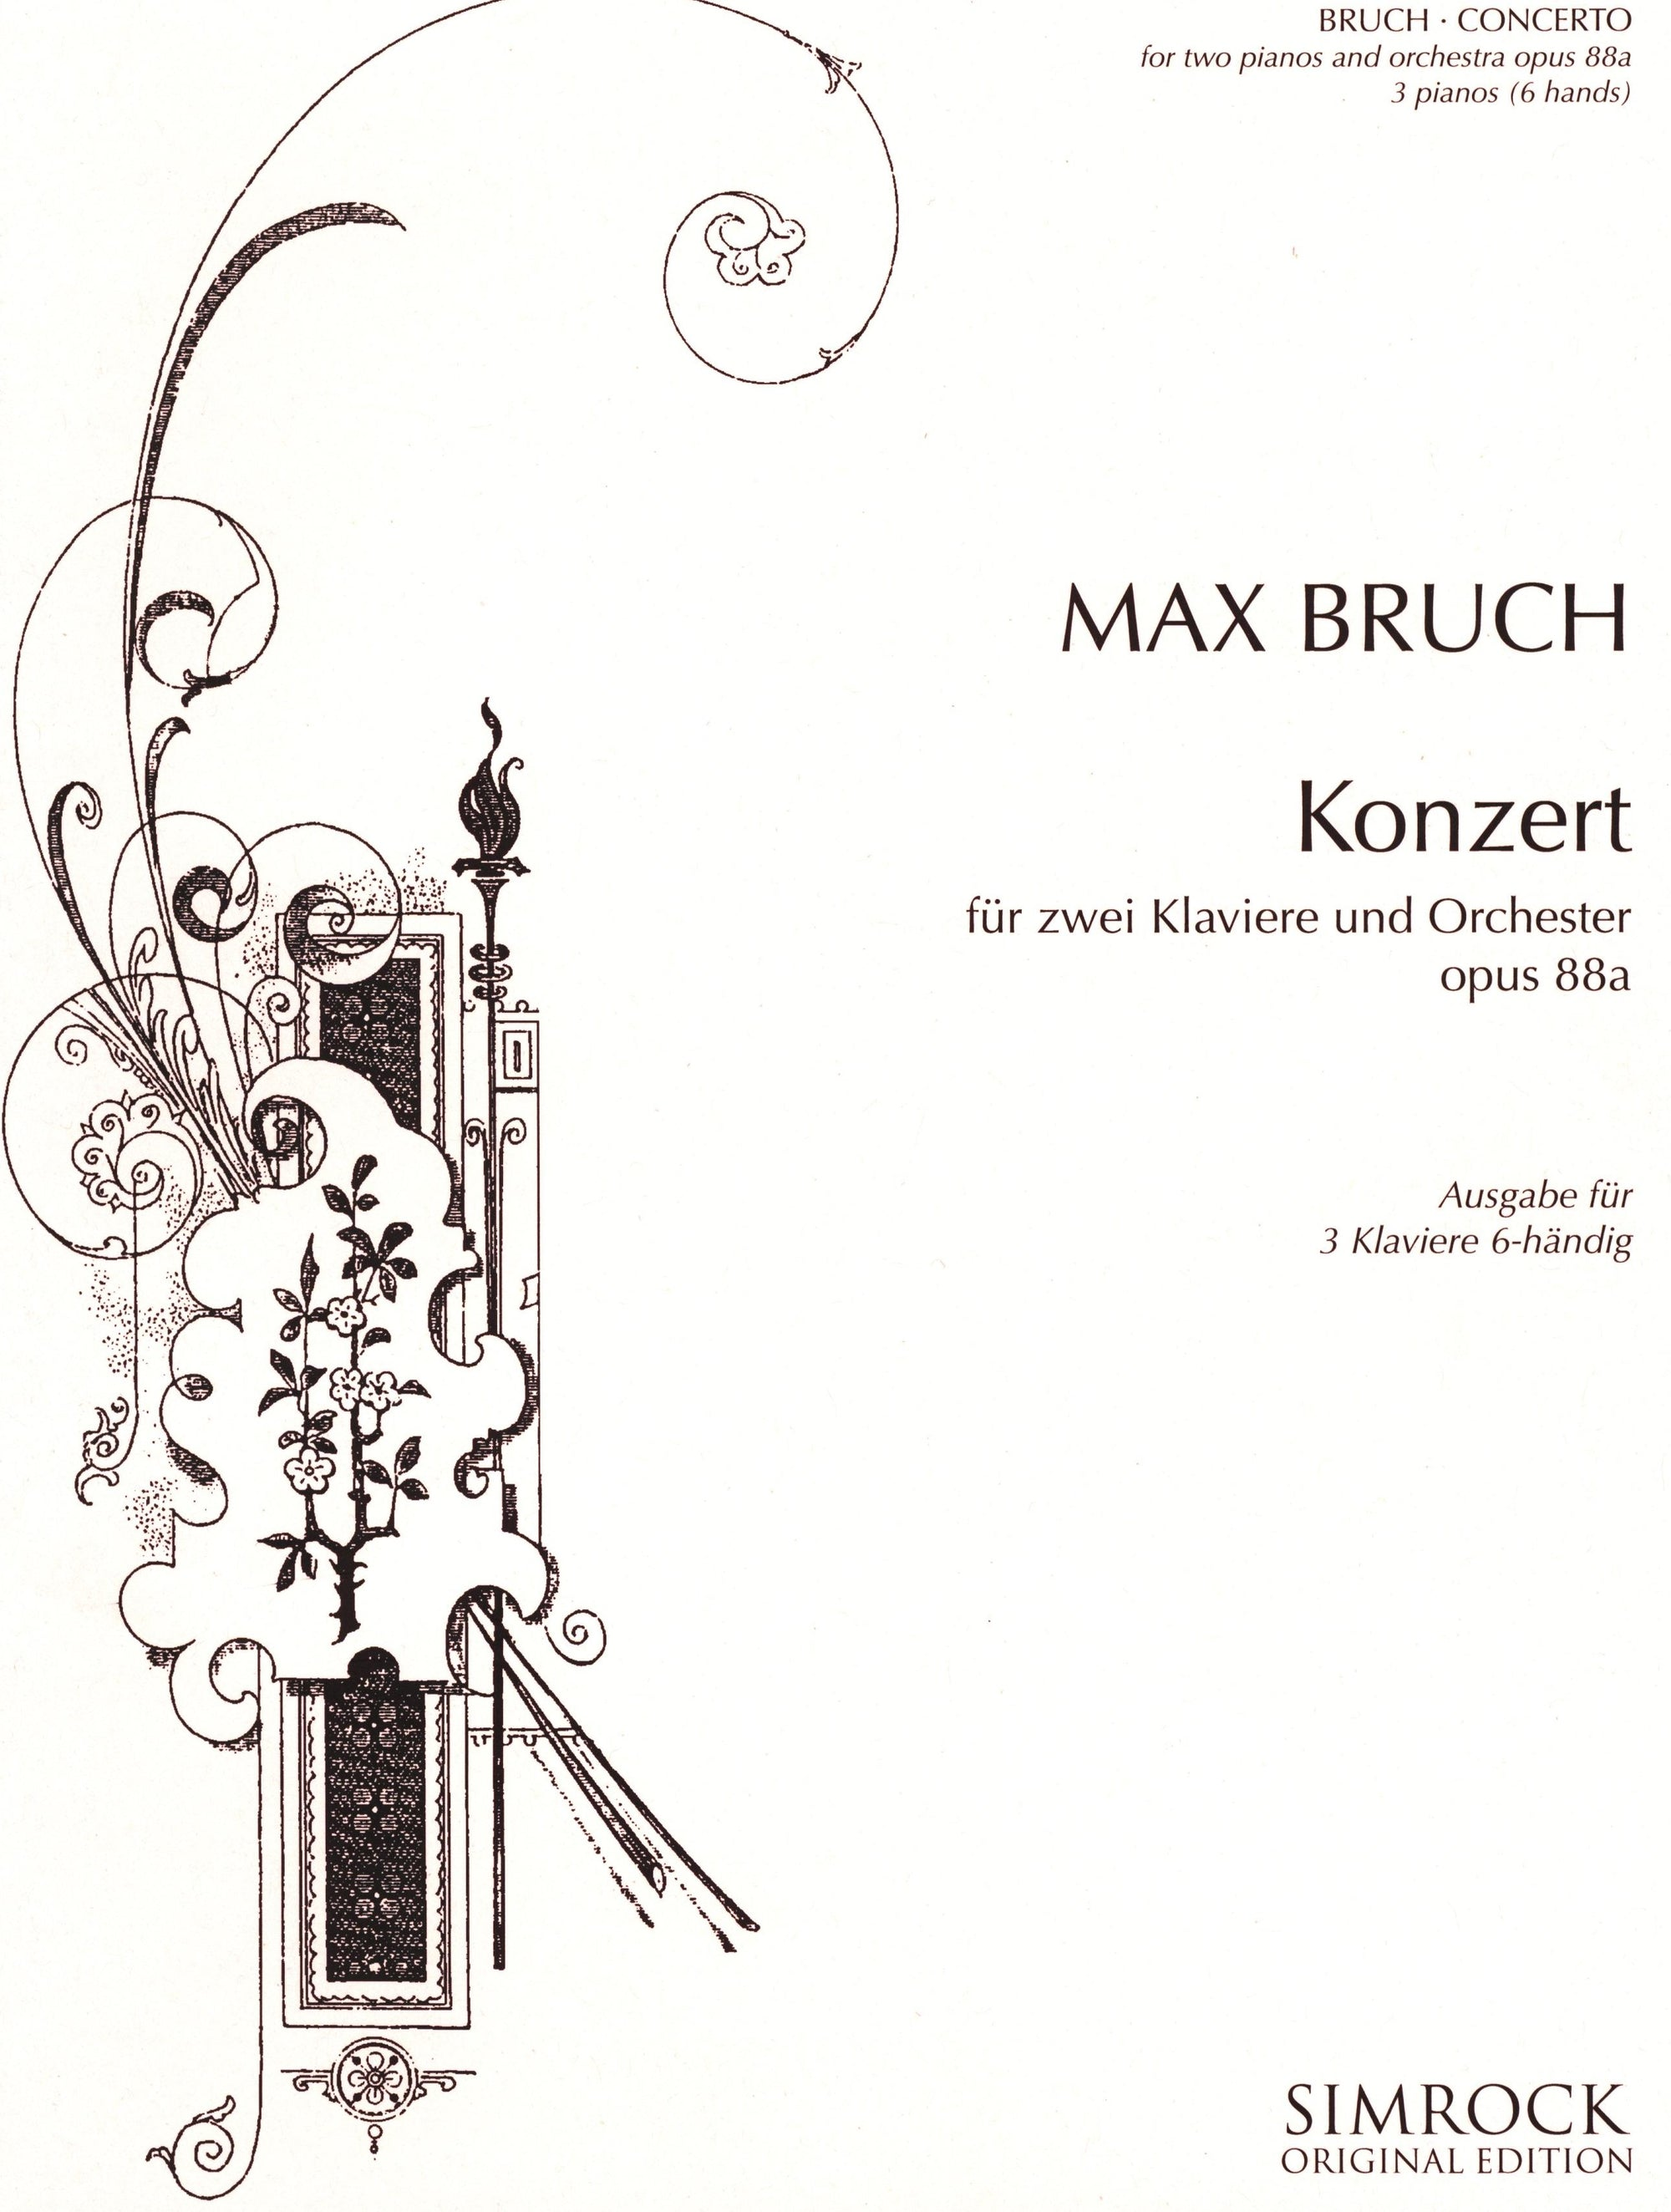 Bruch: Concerto for Two Pianos, Op. 88a